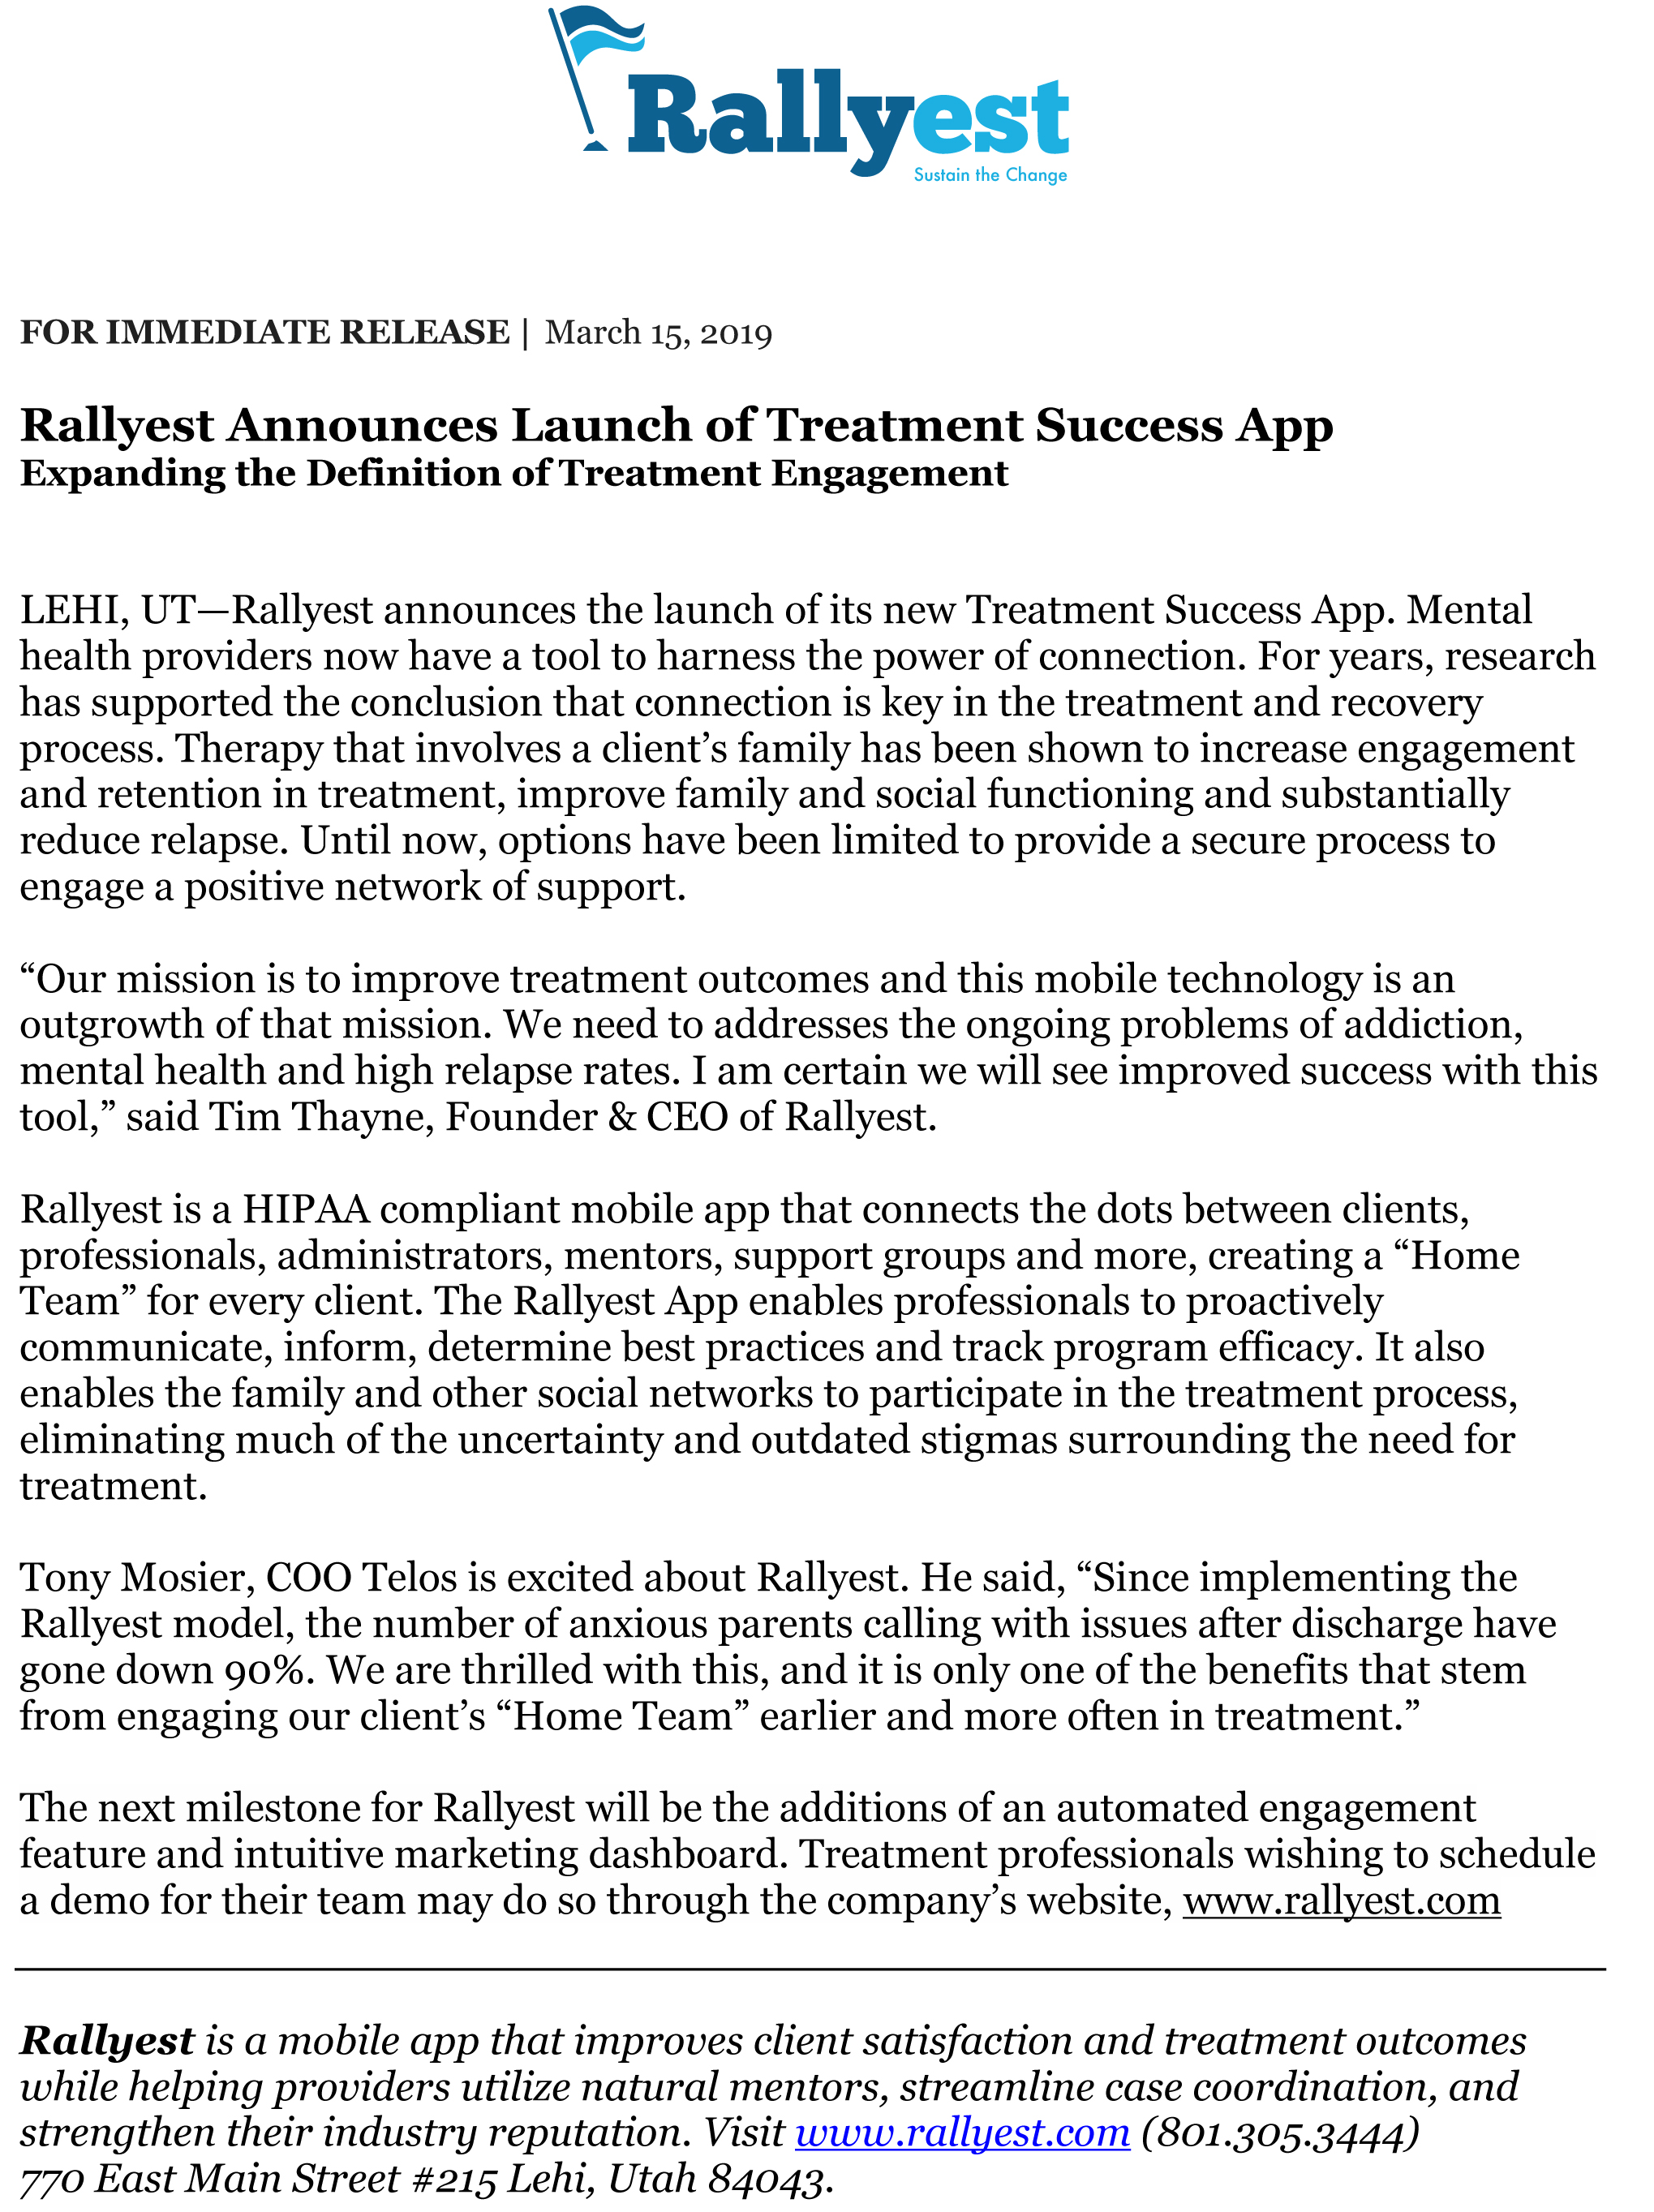 Treatment Success App Launches, by Rallyest